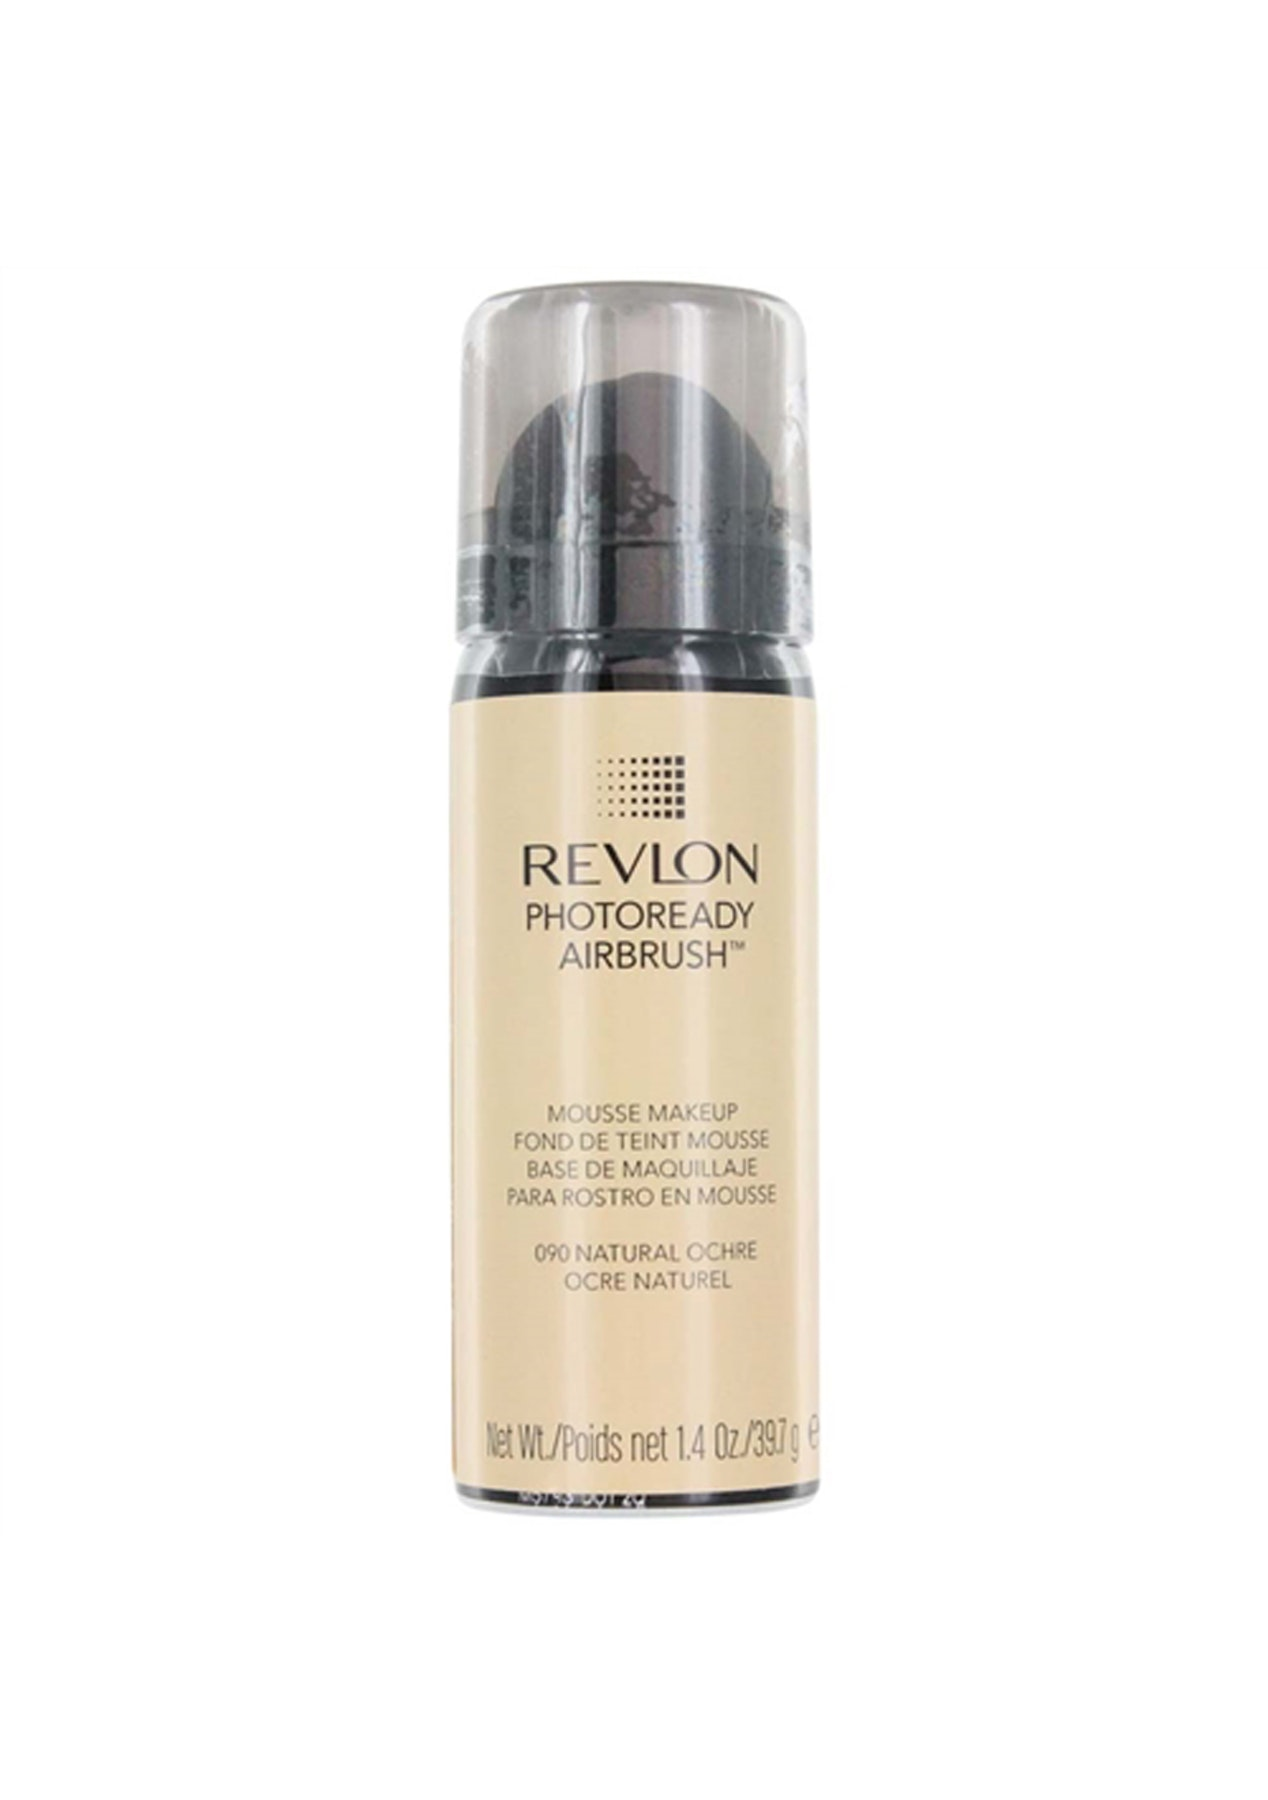 revlon photoready airbrush mousse makeup 090 natural ochre beauty clearance onceit. Black Bedroom Furniture Sets. Home Design Ideas